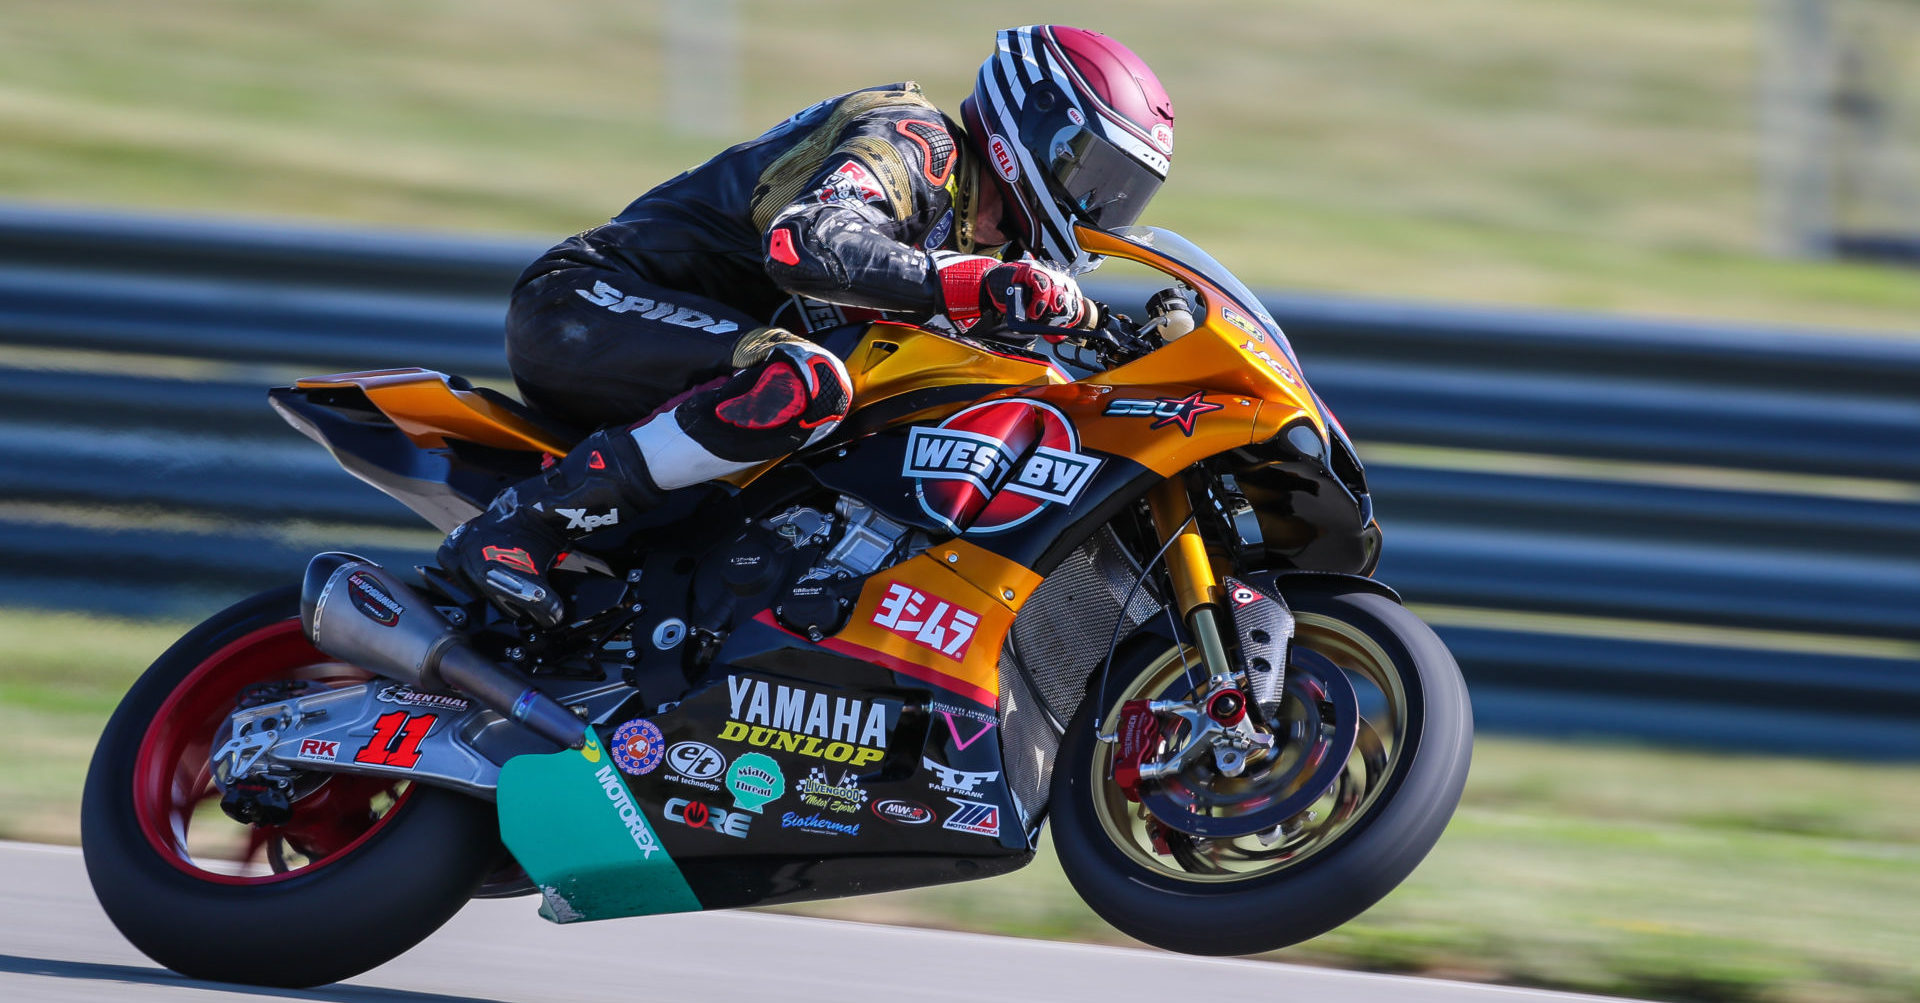 Mathew Scholtz (11) on his Westby Racing Yamaha YZF-R1. Photo courtesy of Westby Racing.